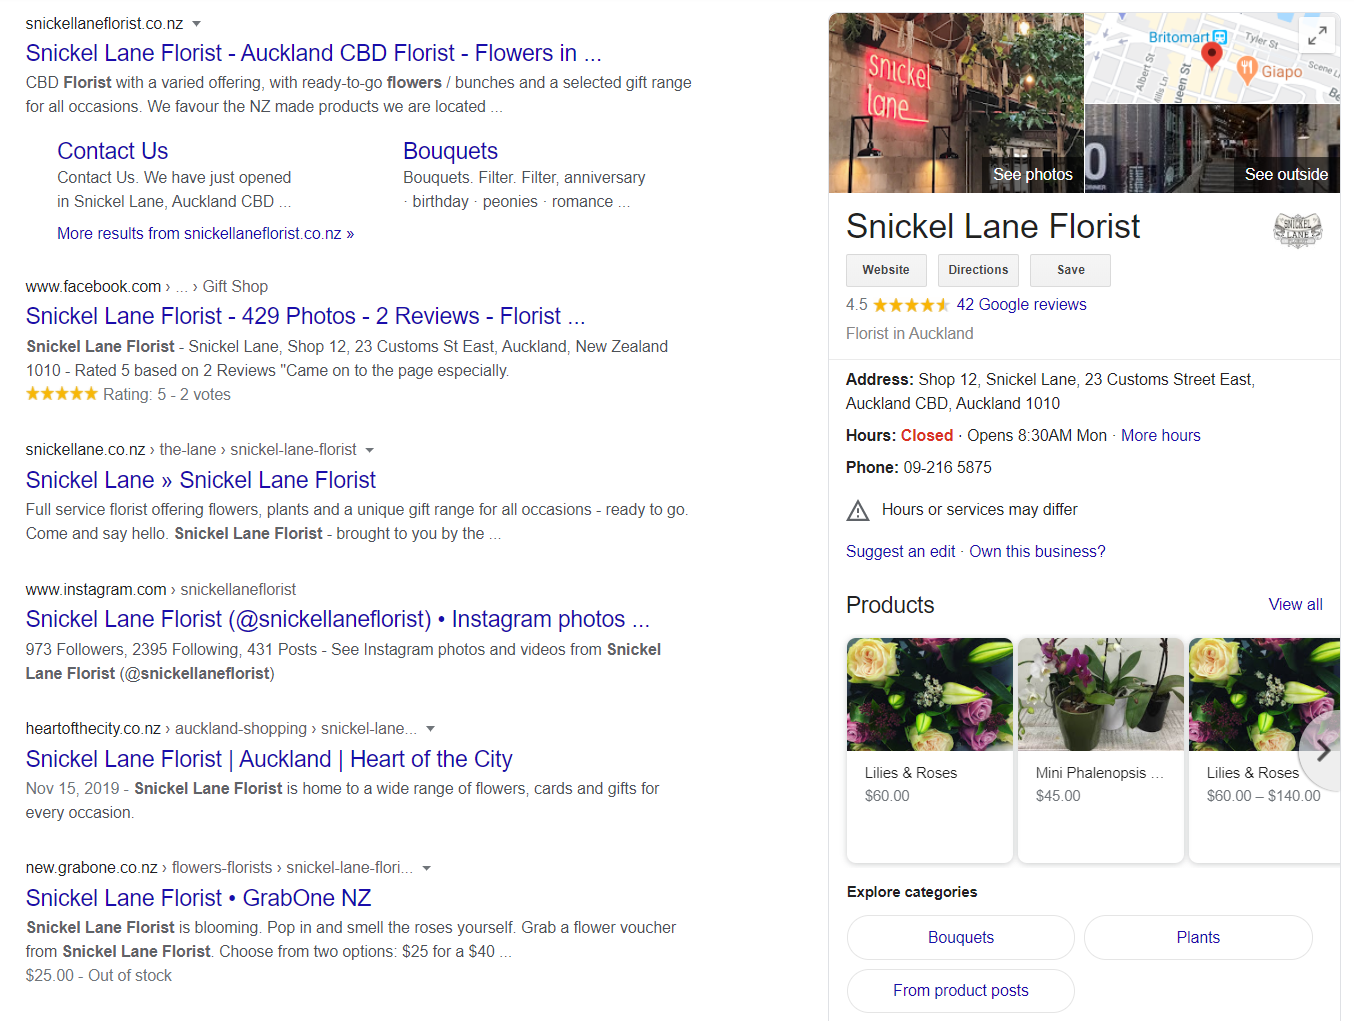 Example of a optimized Google My Business page